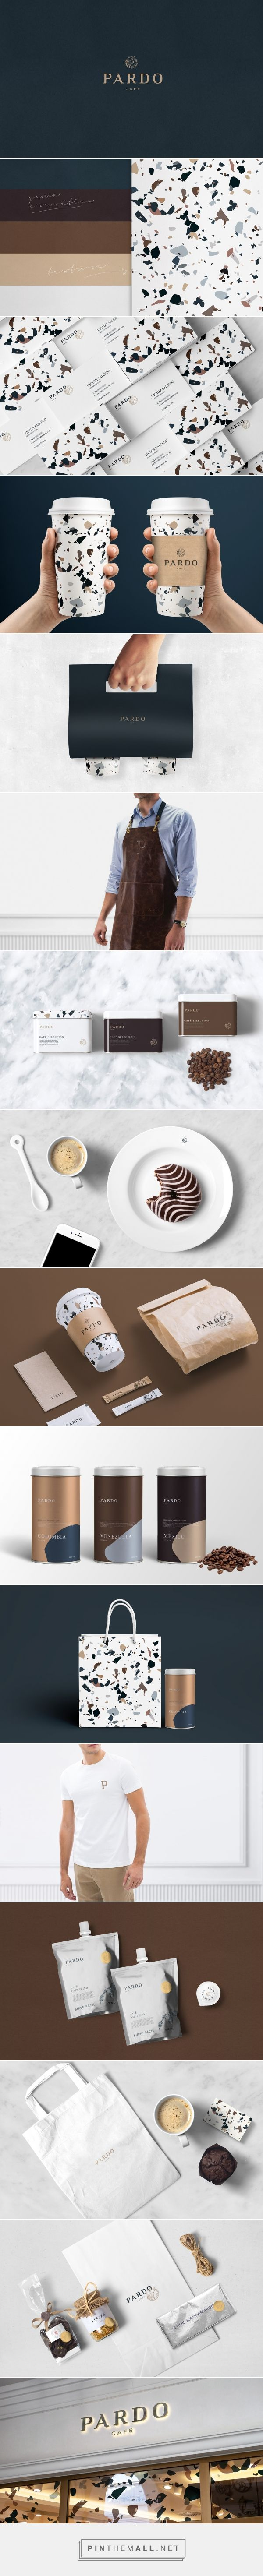 PARDO Cafe Branding by Salvador Munca